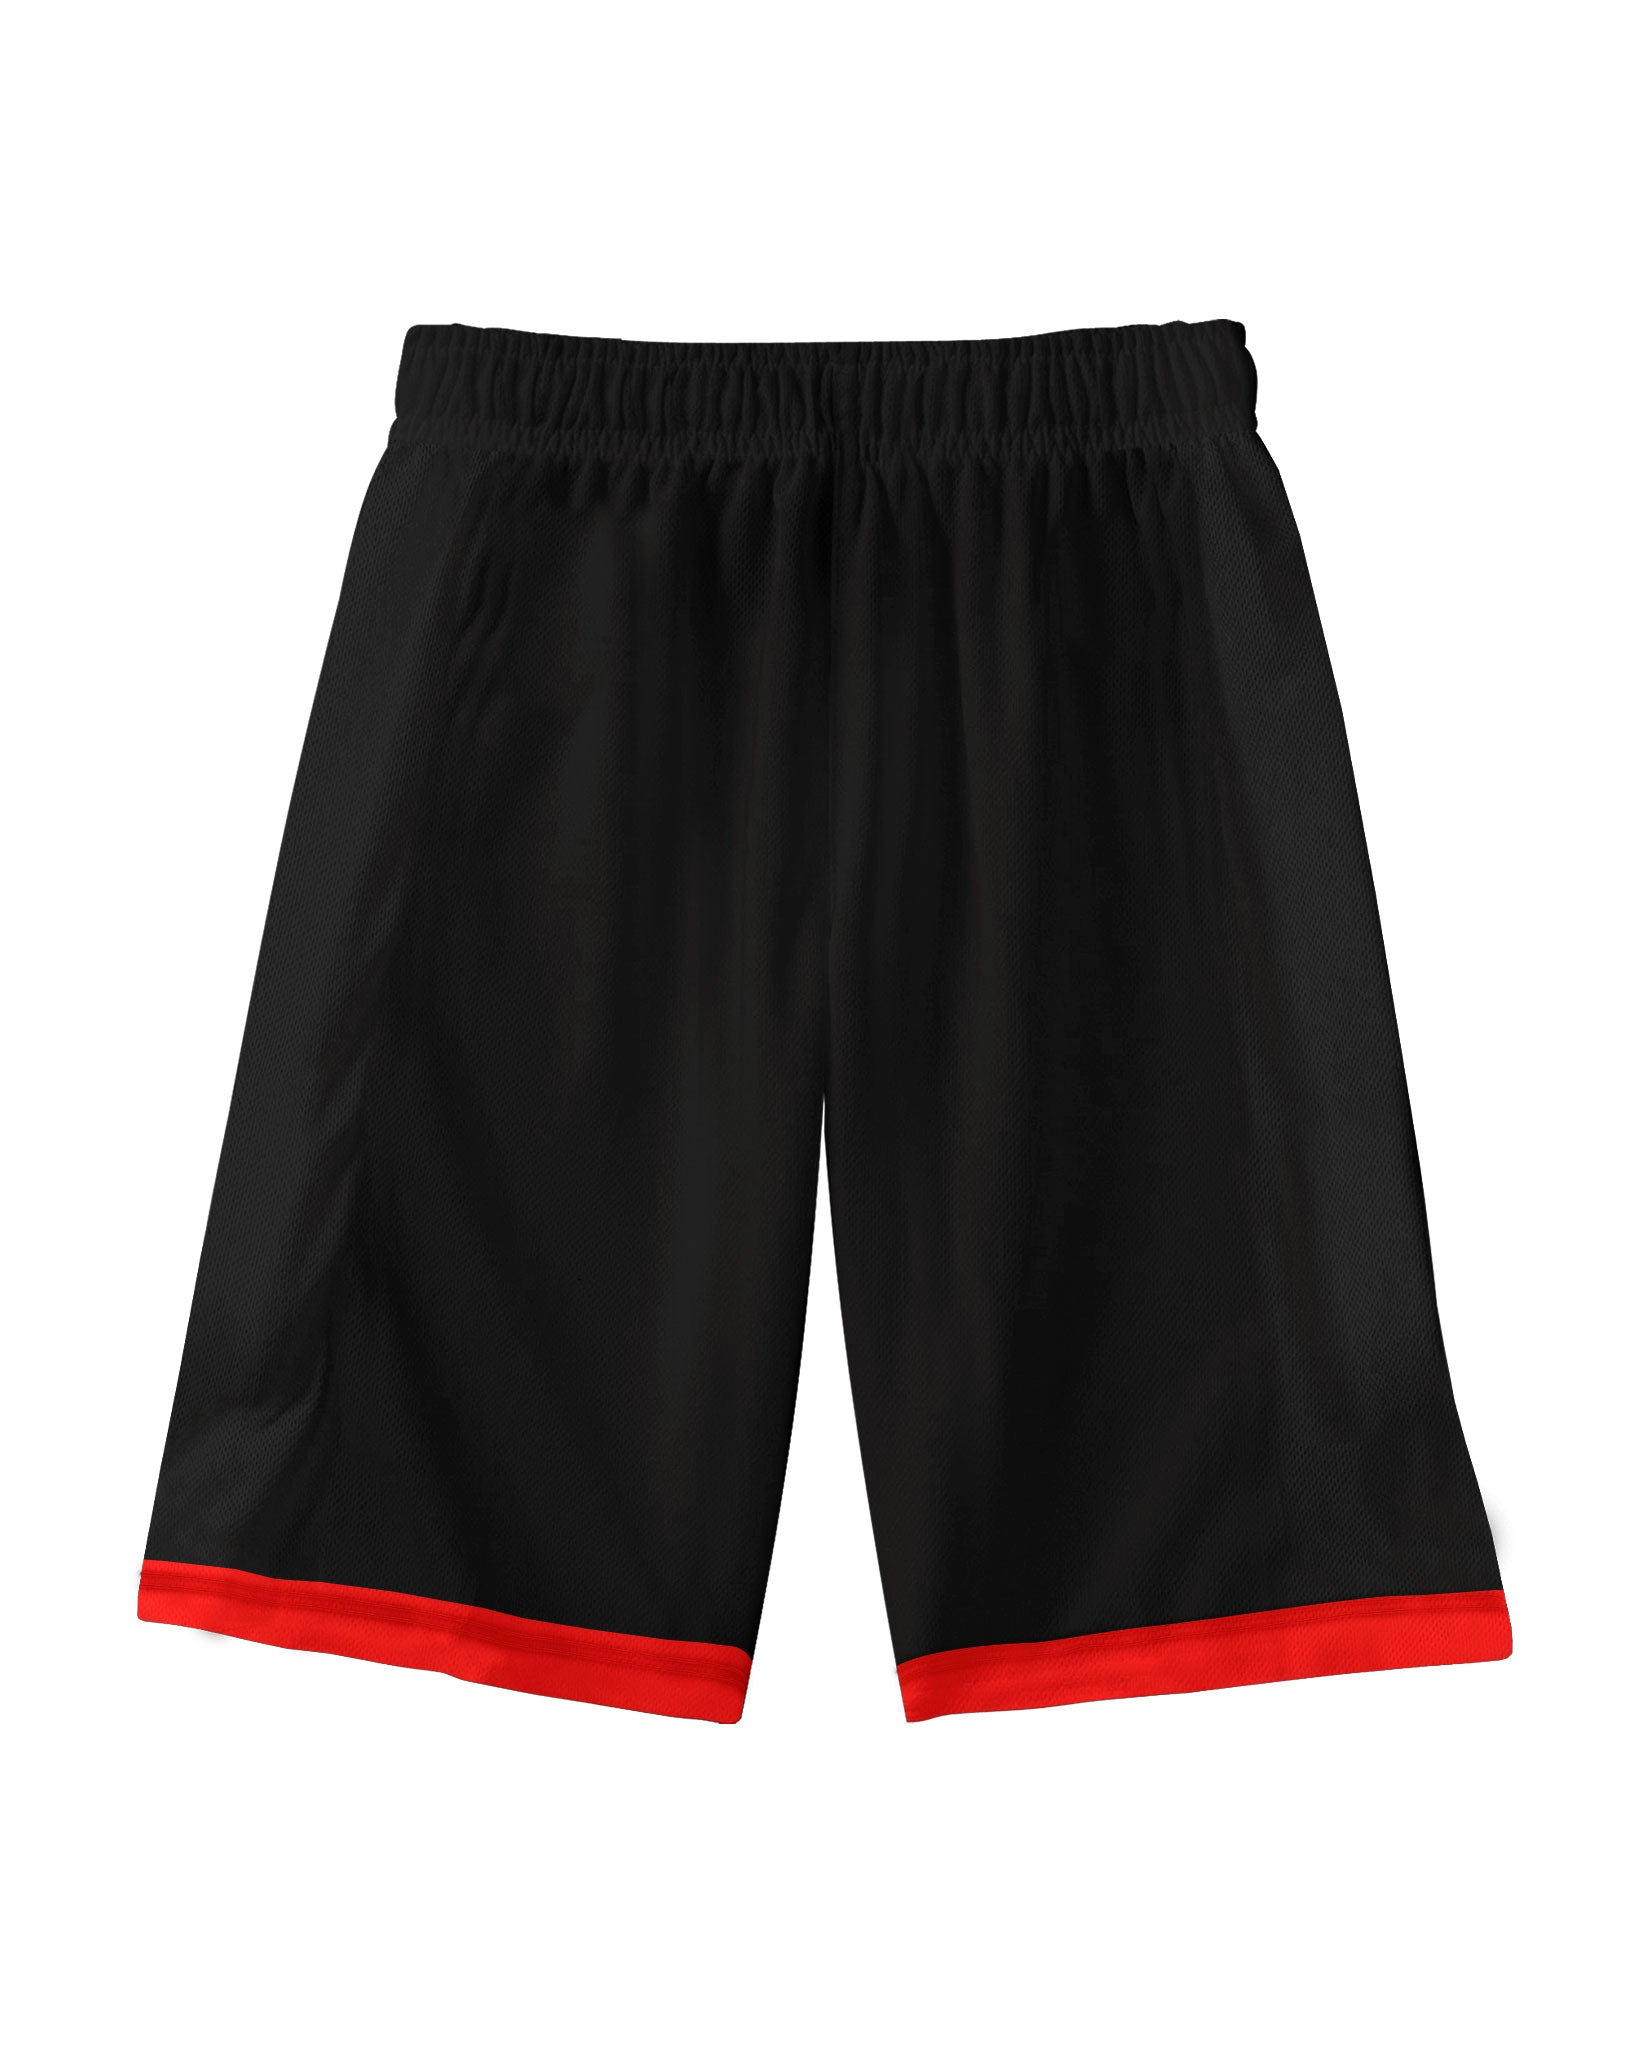 Dragon Shorts - Youth